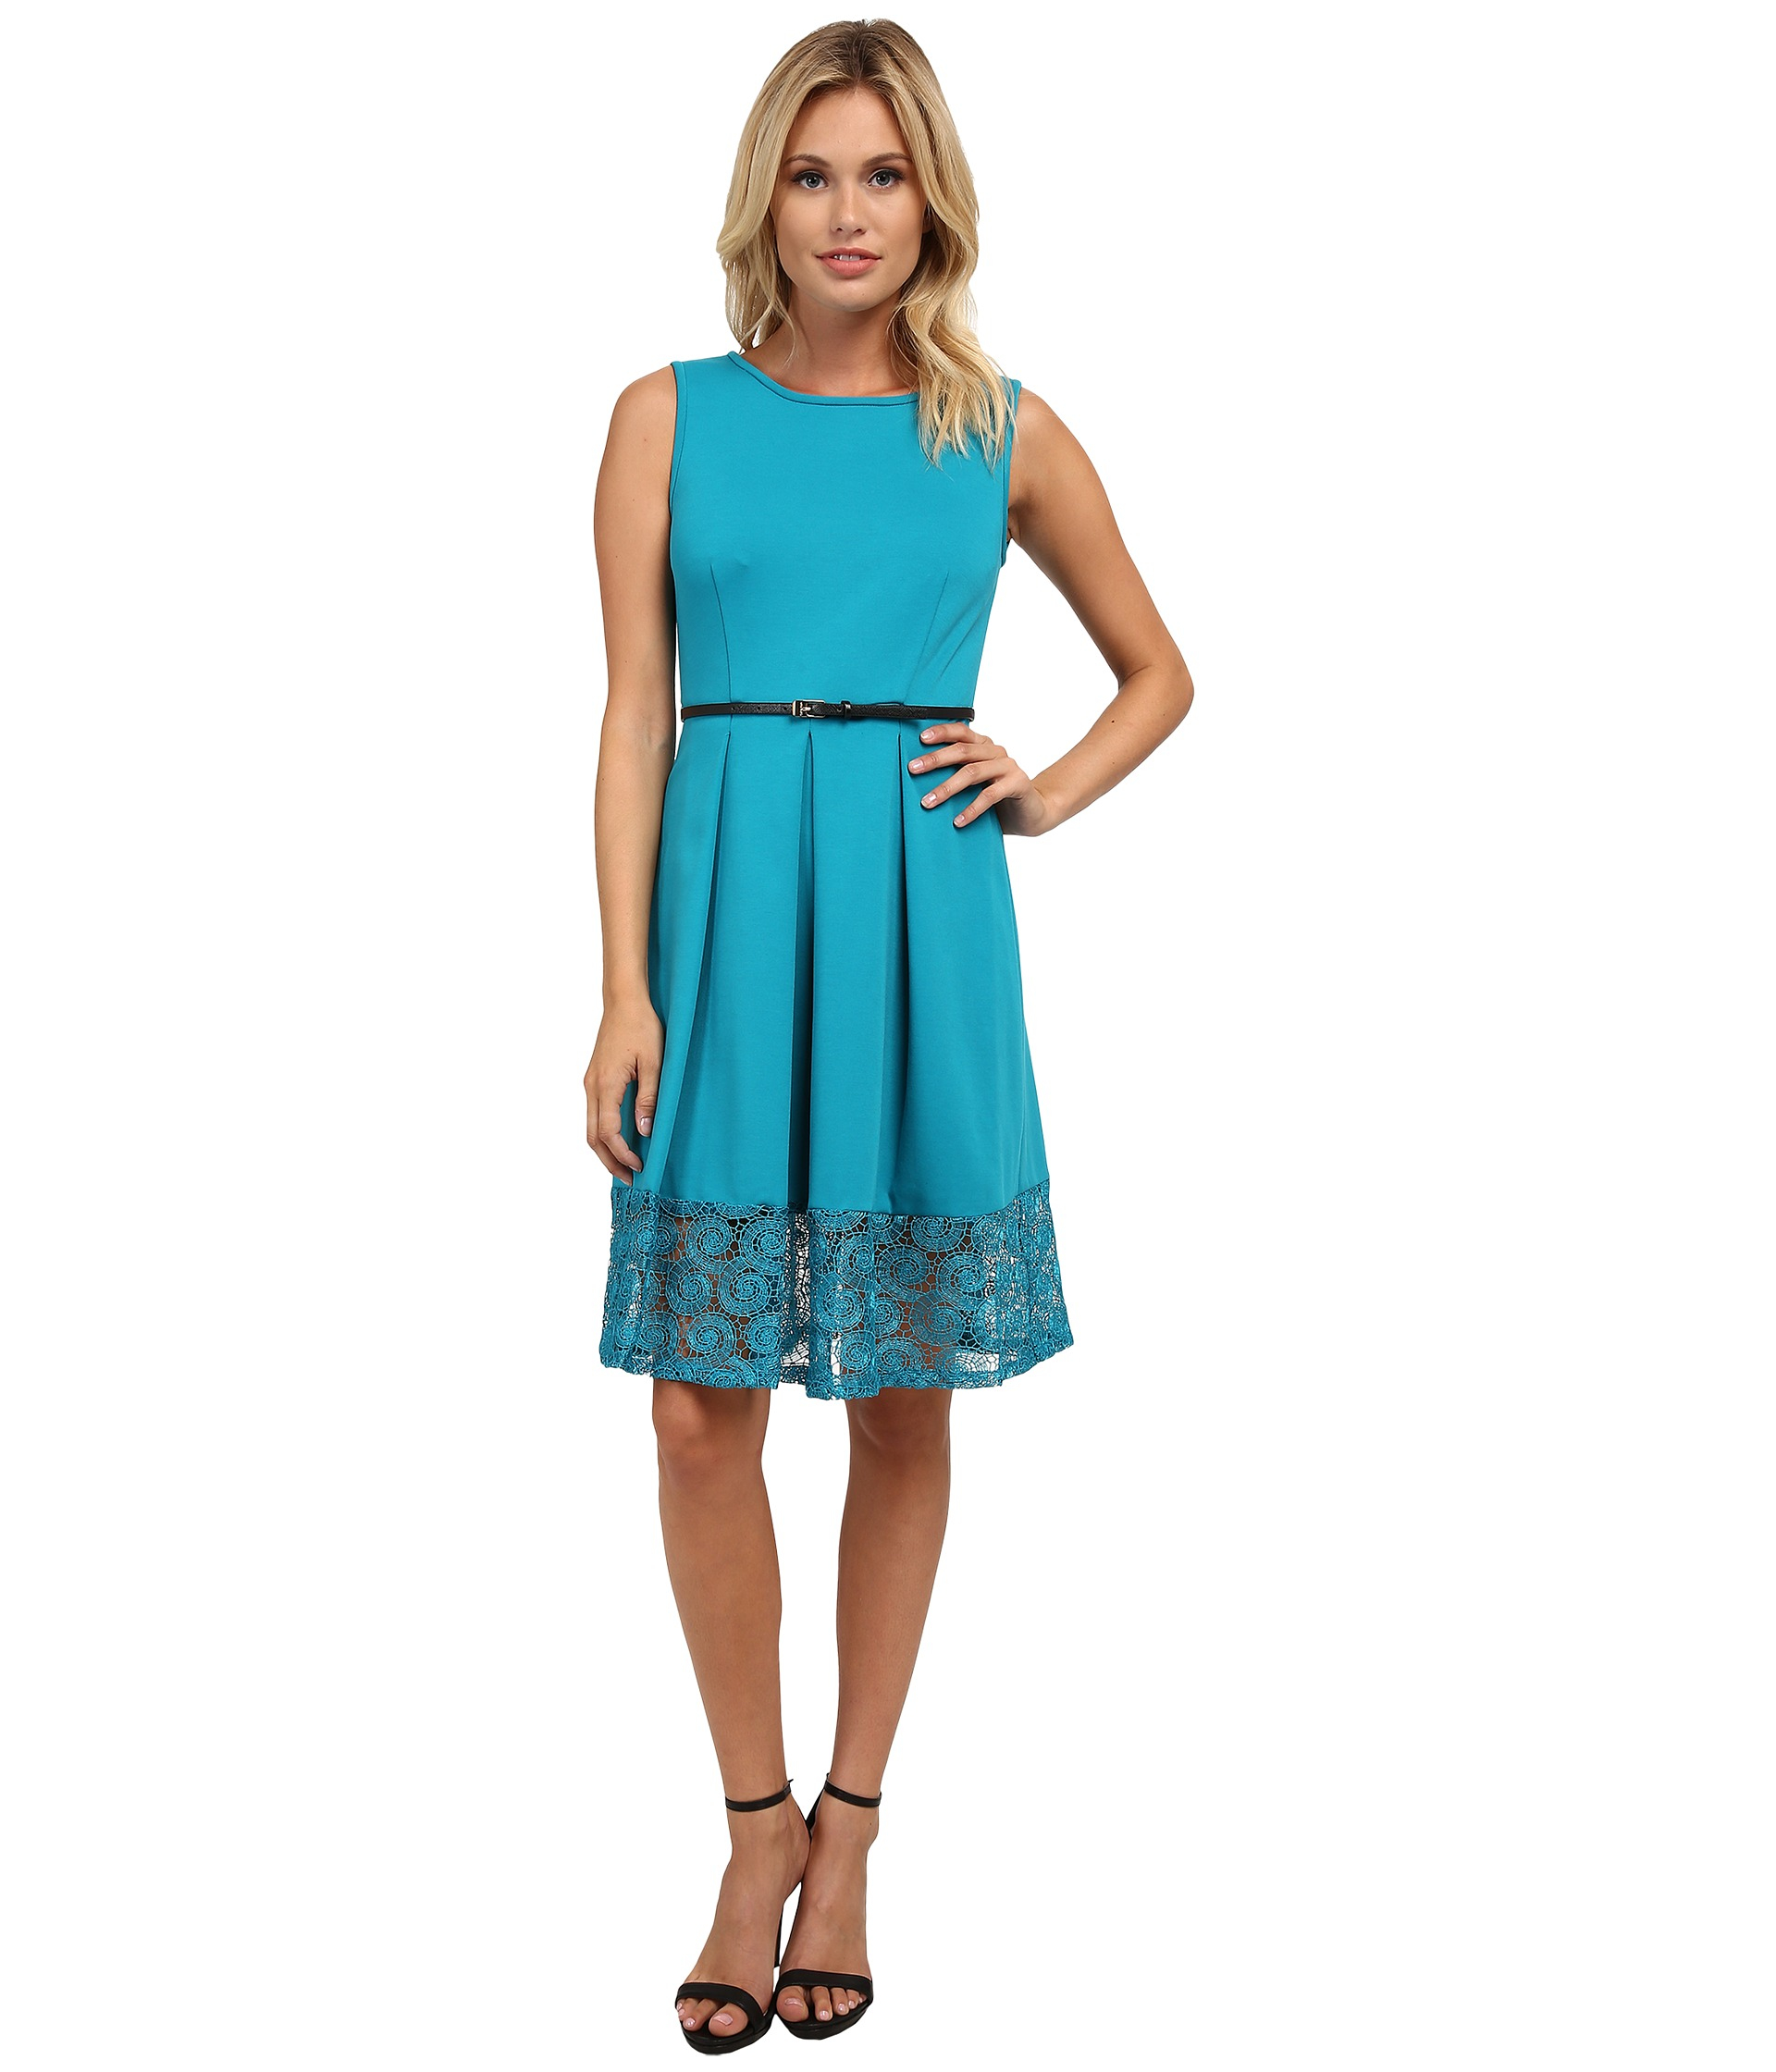 Lyst - Calvin Klein Fit & Flare Dress W/ Lace Bottom in Green